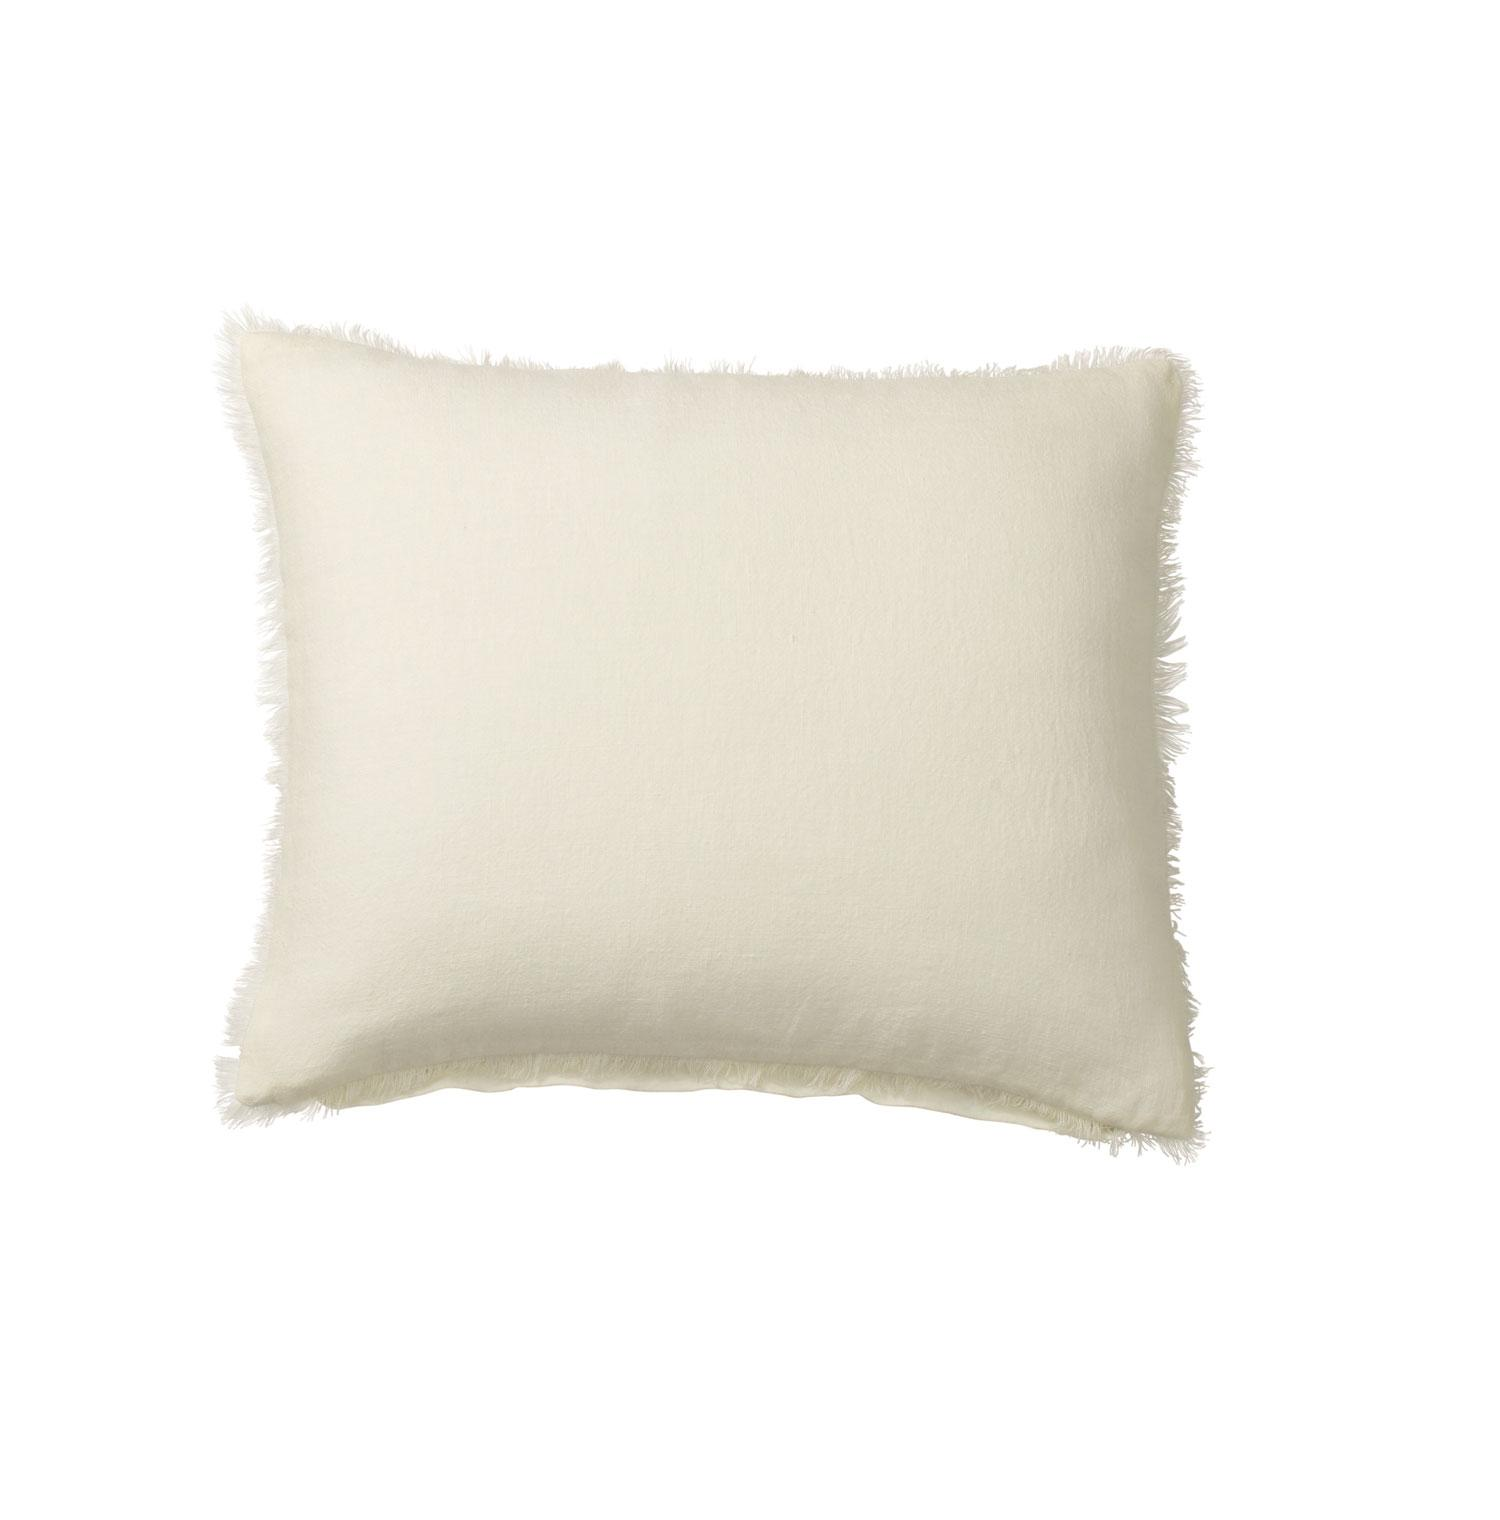 pin pillow decorative set beige throw piece covers linen pillows off sukan